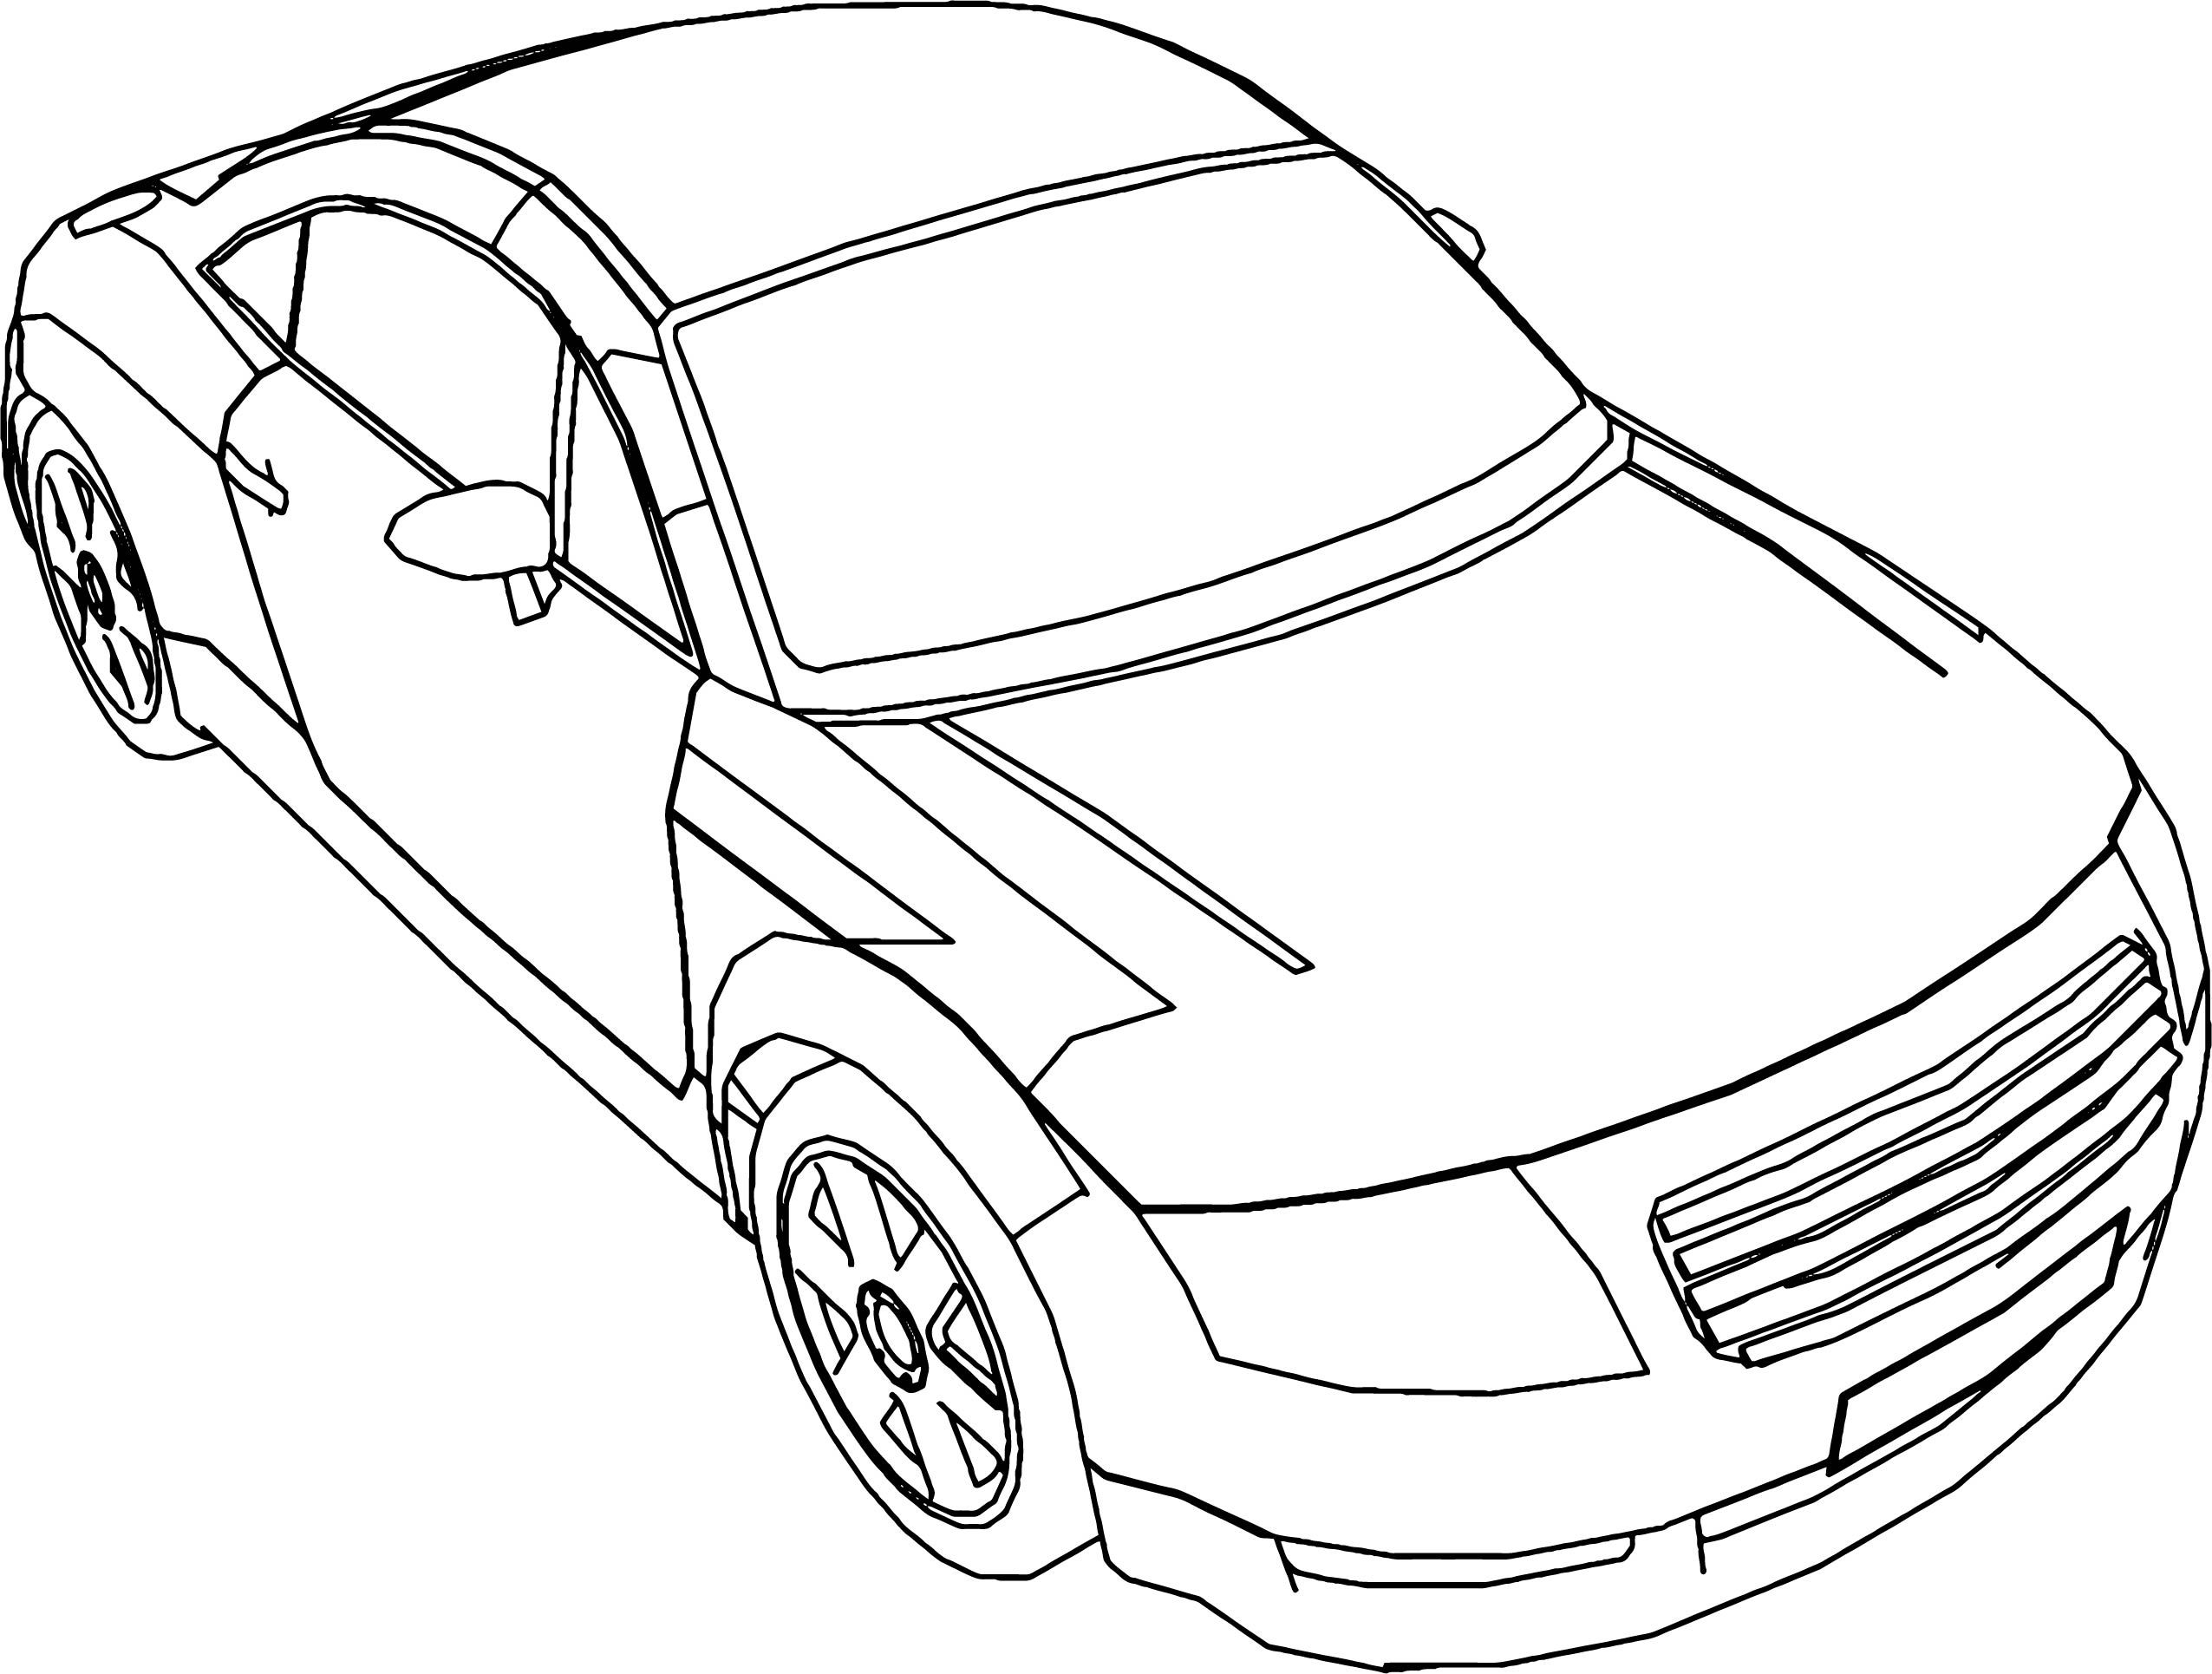 Cool Audi Tt Car Coloring Page Cars Coloring Pages Tt Car Audi Tt